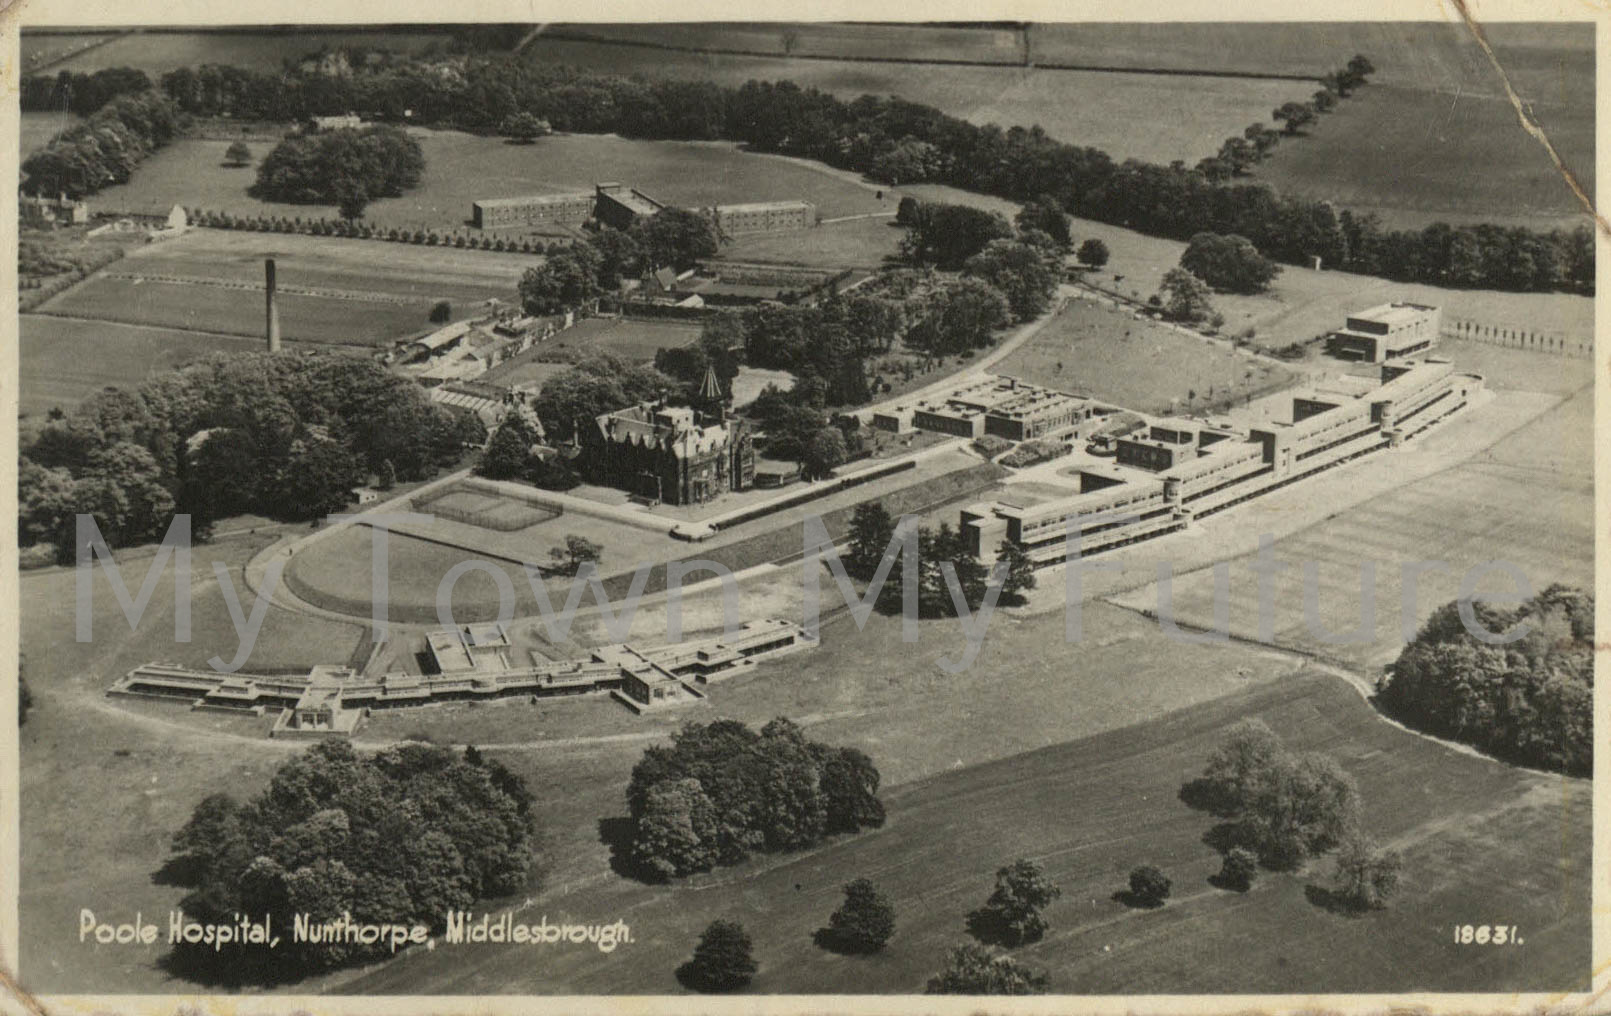 Aerial view of Poole Hospital site (undated)